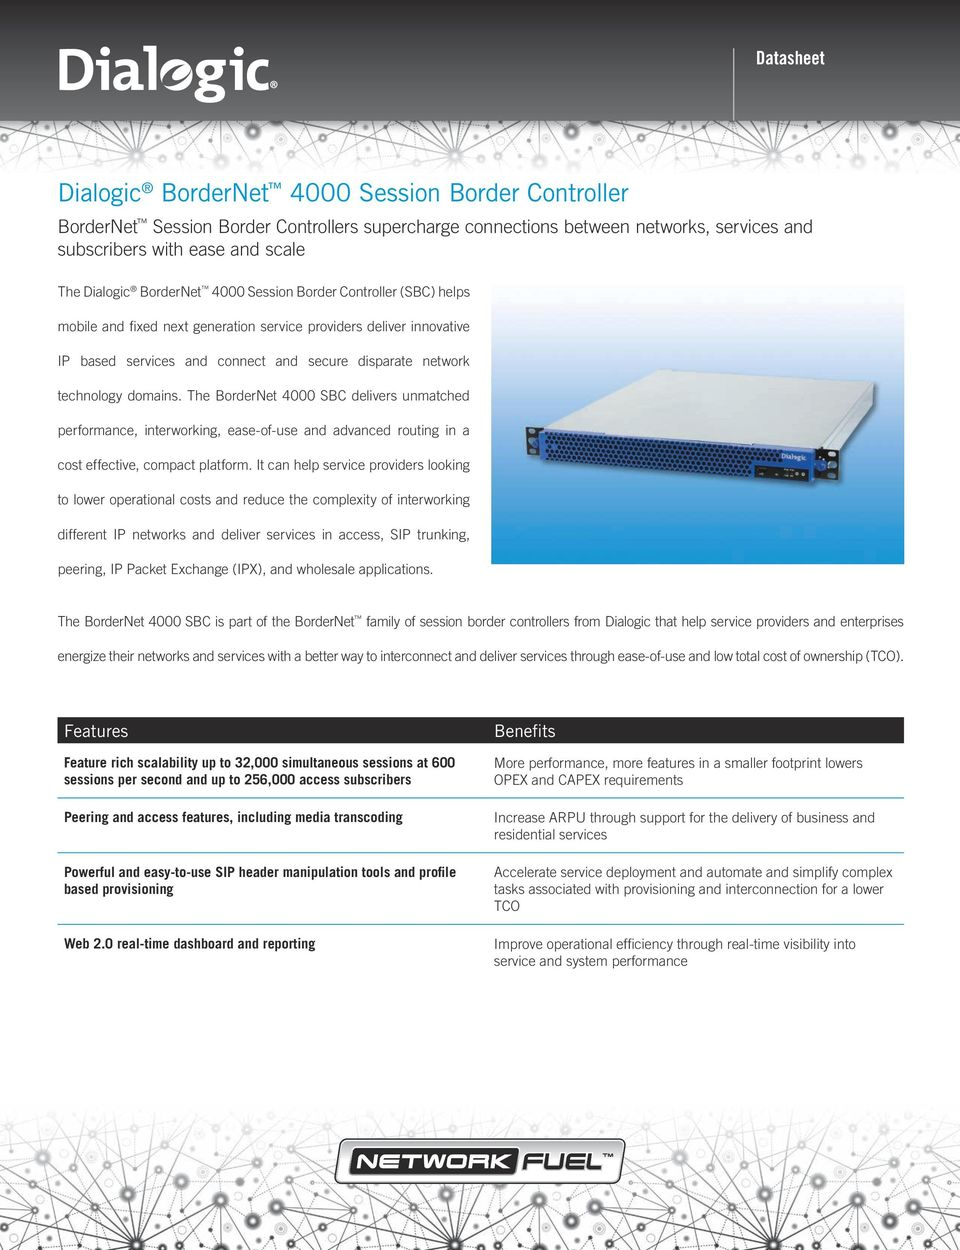 The BorderNet 4000 SBC delivers unmatched performance, interworking, ease-of-use and advanced routing in a cost effective, compact platform.